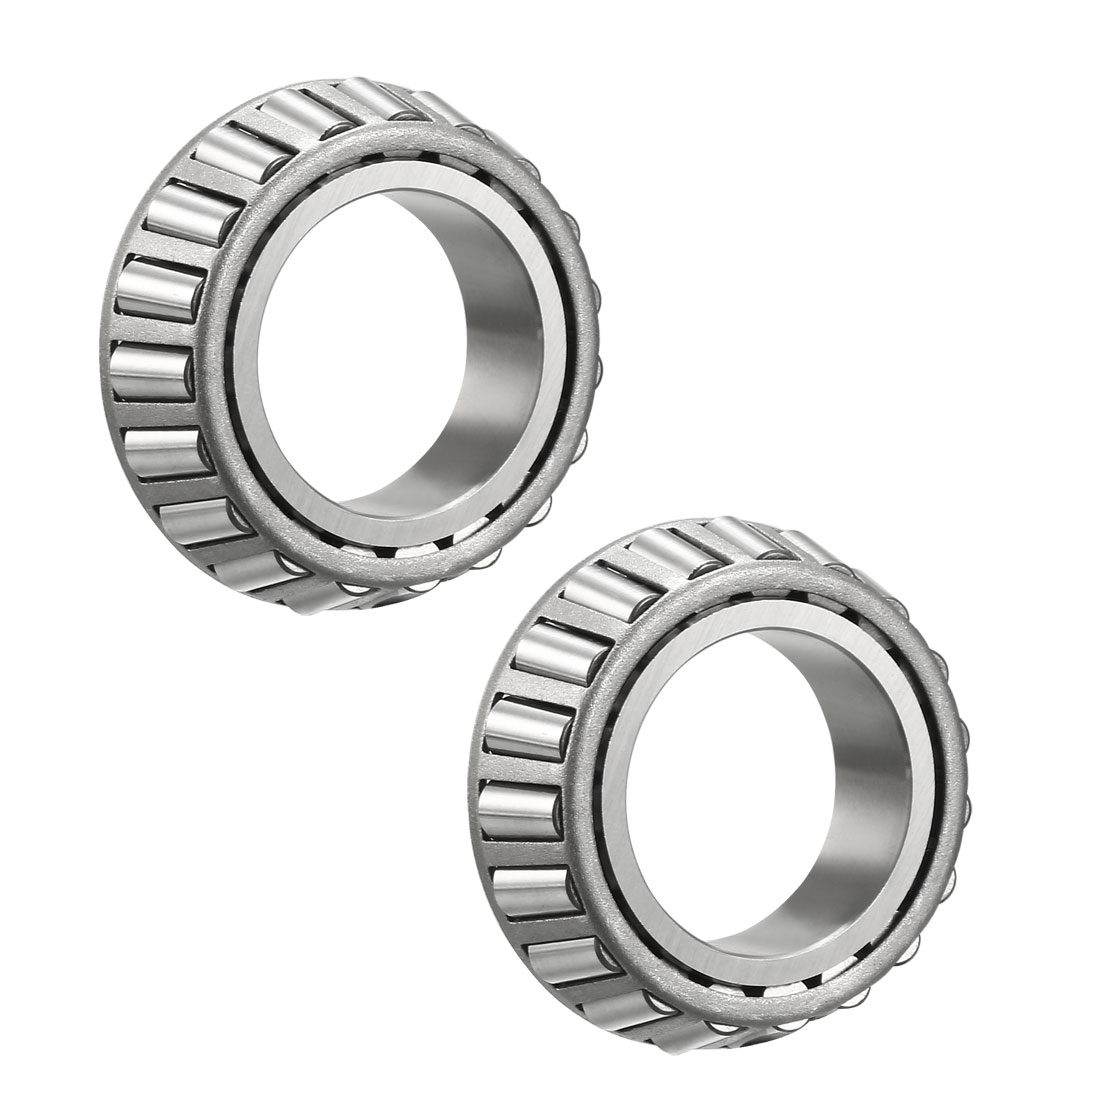 "8125 Tapered Roller Bearing Single Cone 1.25"" Bore 0.594"" Width 2pcs"